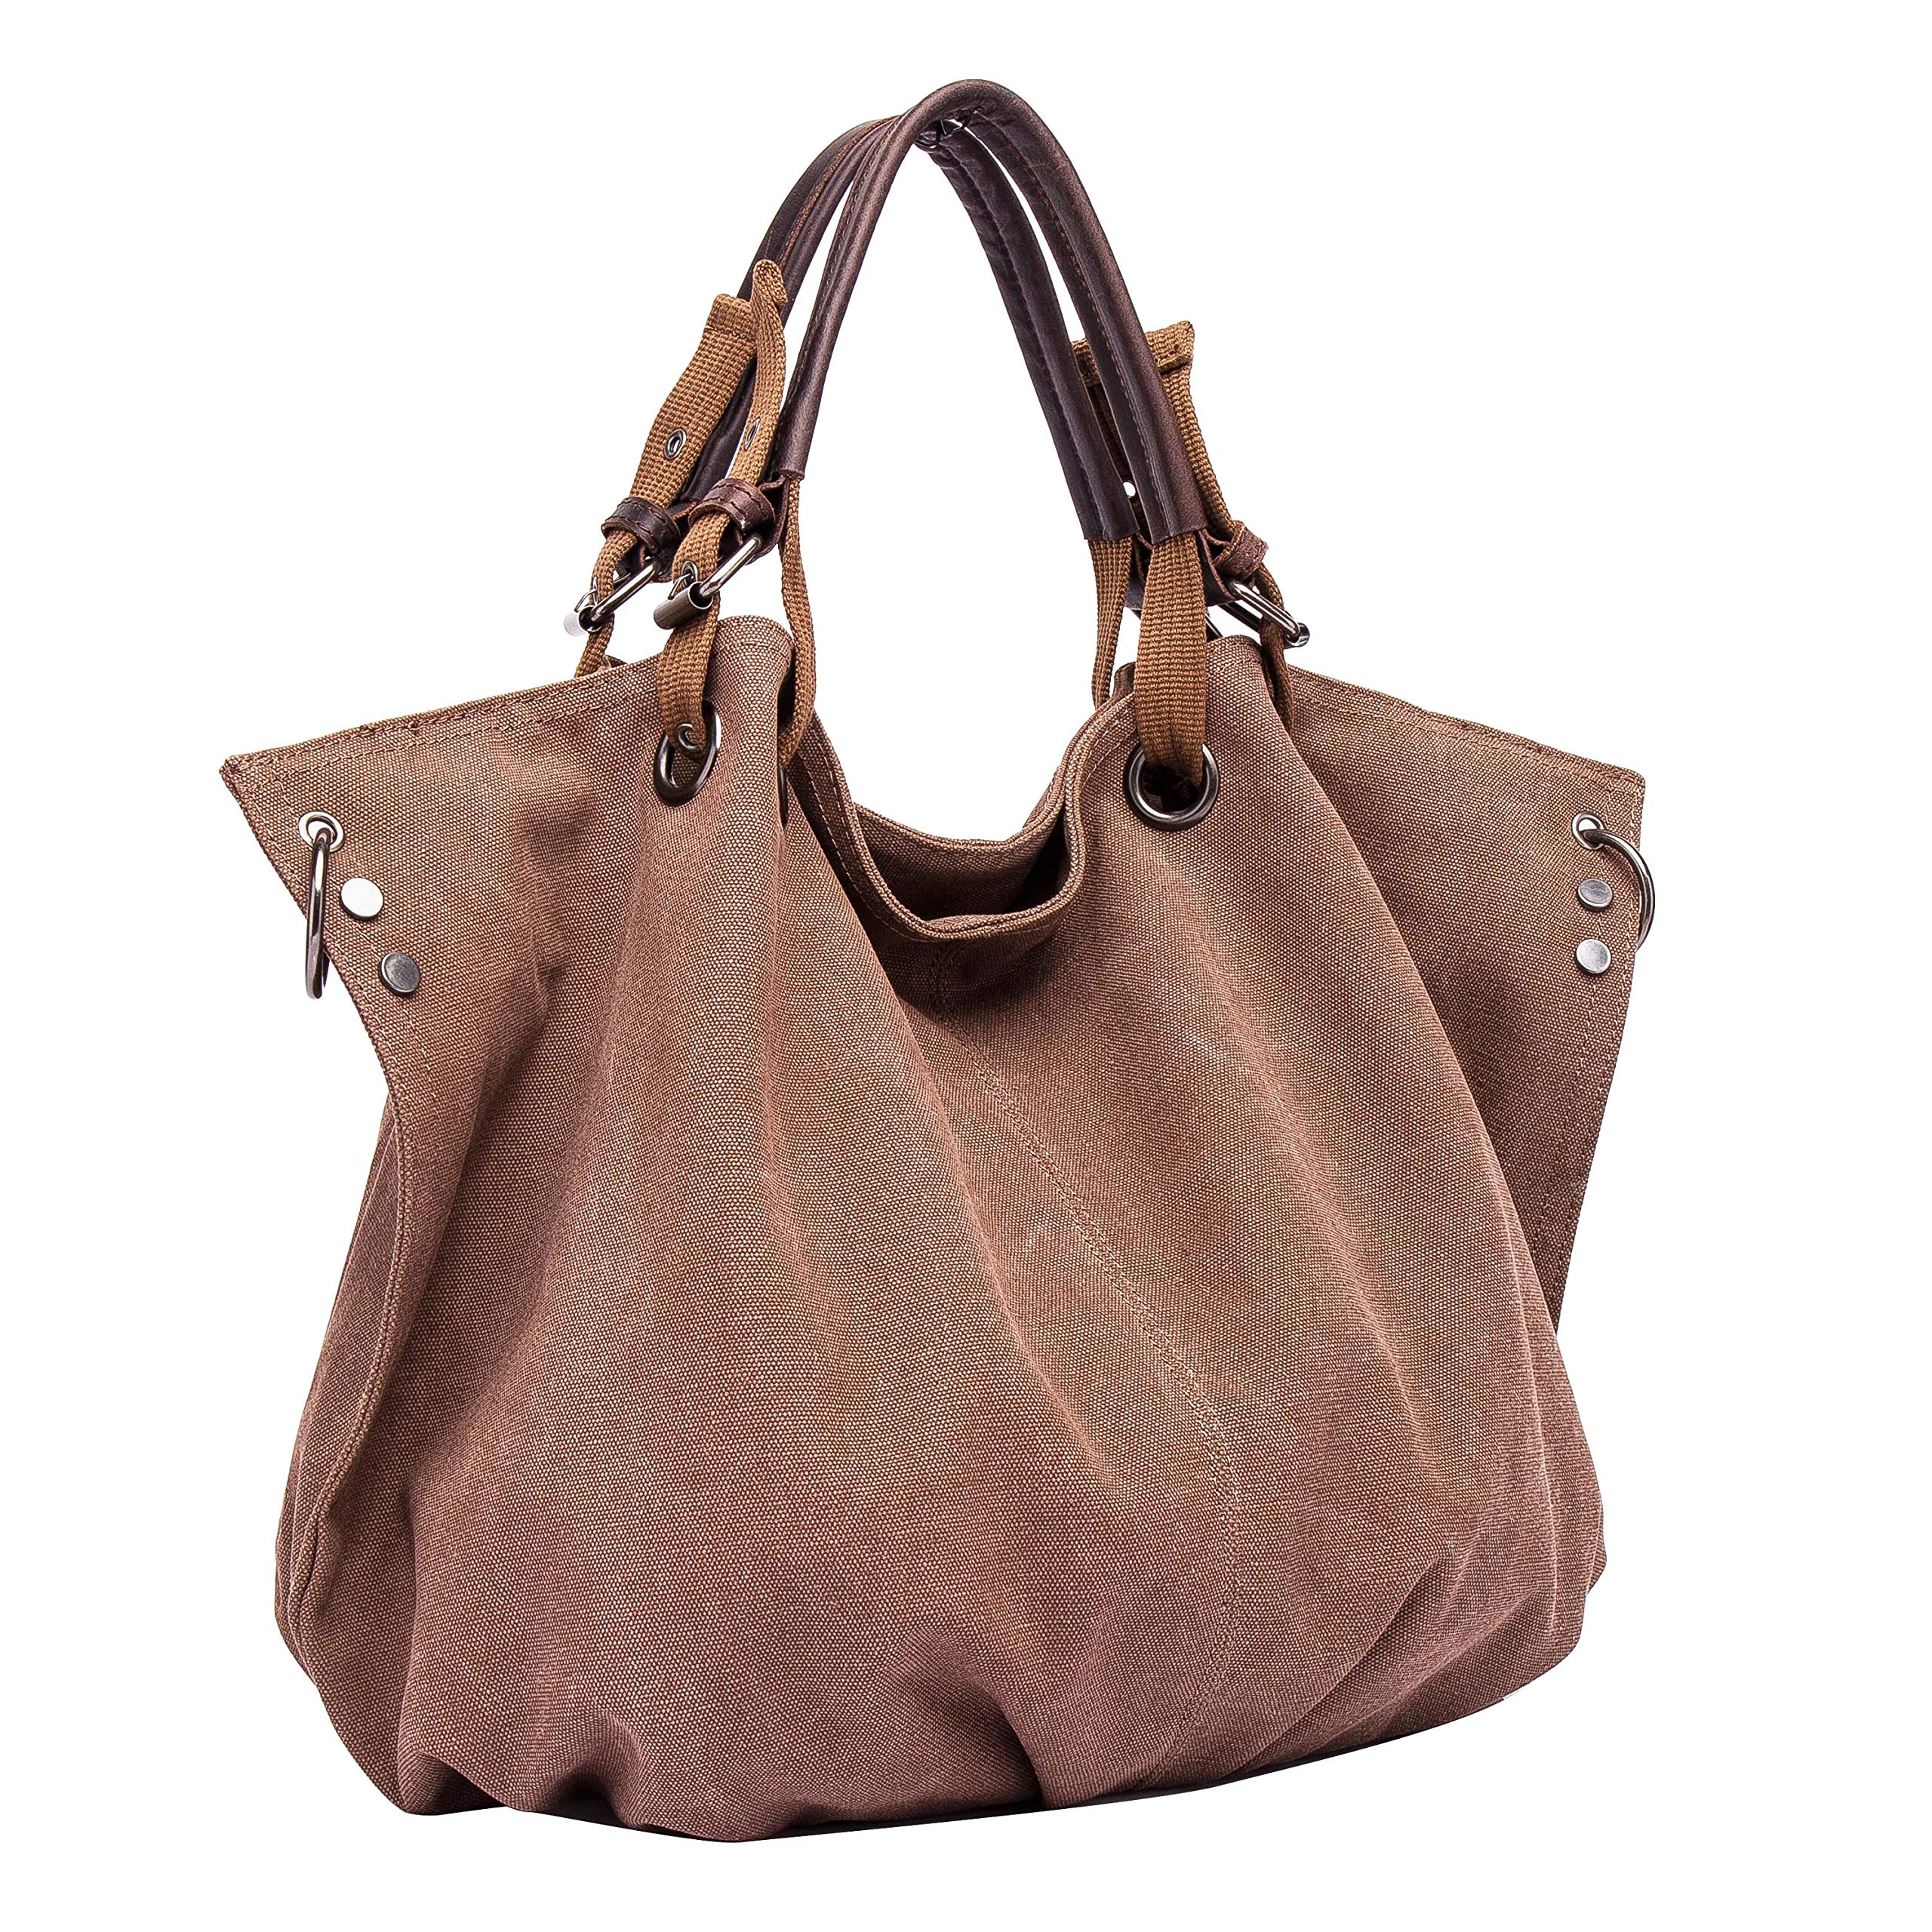 fdbab58a57c3 Women Top Handle Satchel Handbags Shoulder Bag Messenger Tote Washed  Leather Purses Bag … (Coffee)